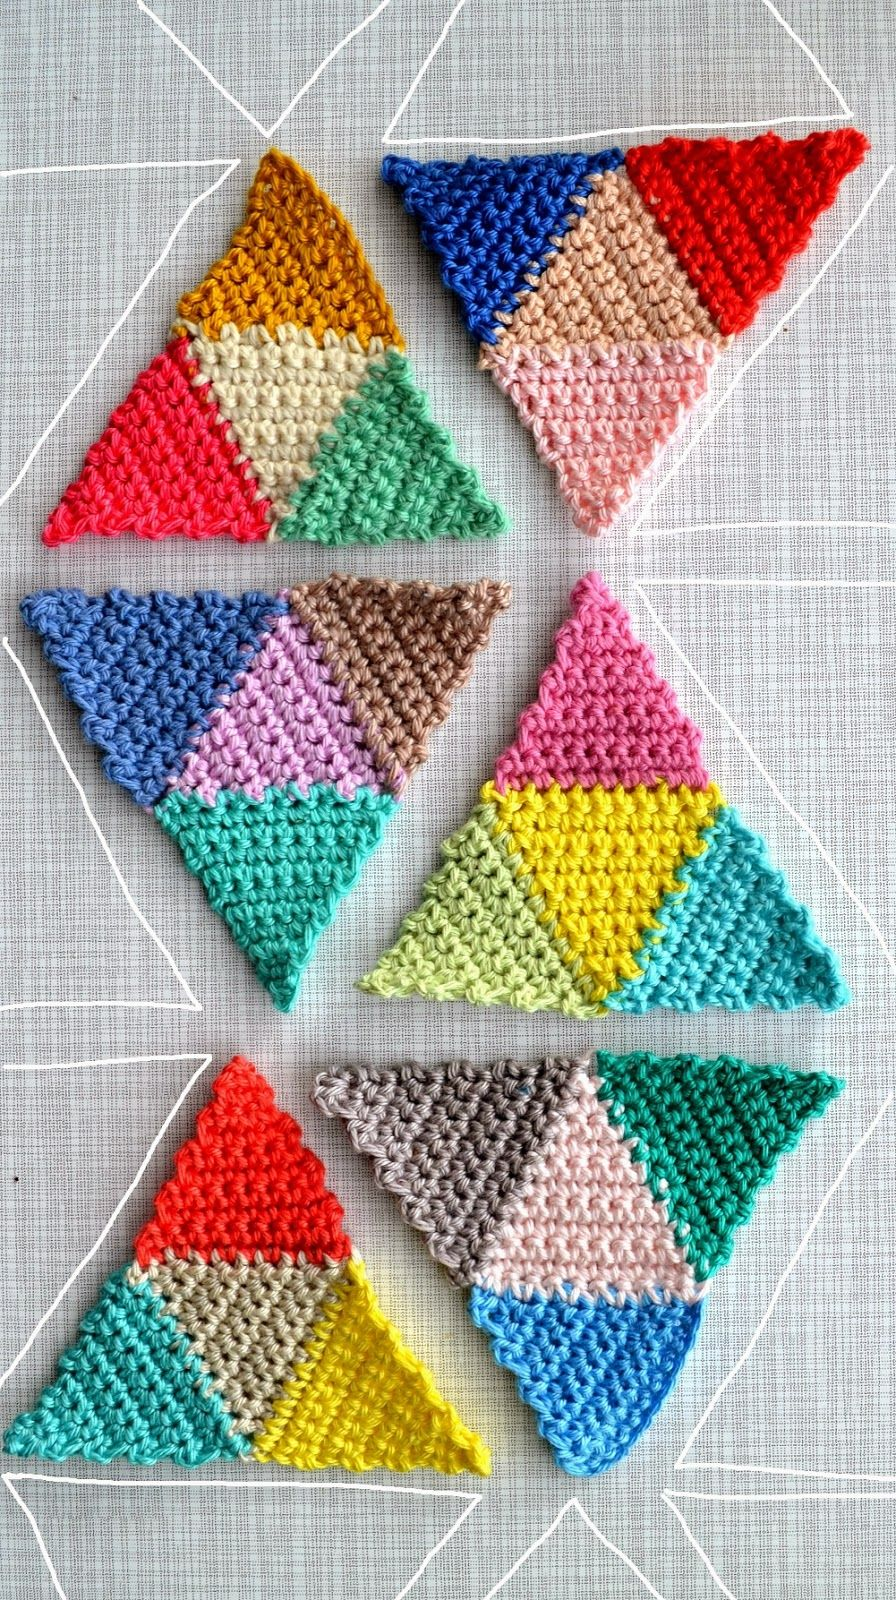 ingthings: Knitted shawl DIY | Crochet projects ...